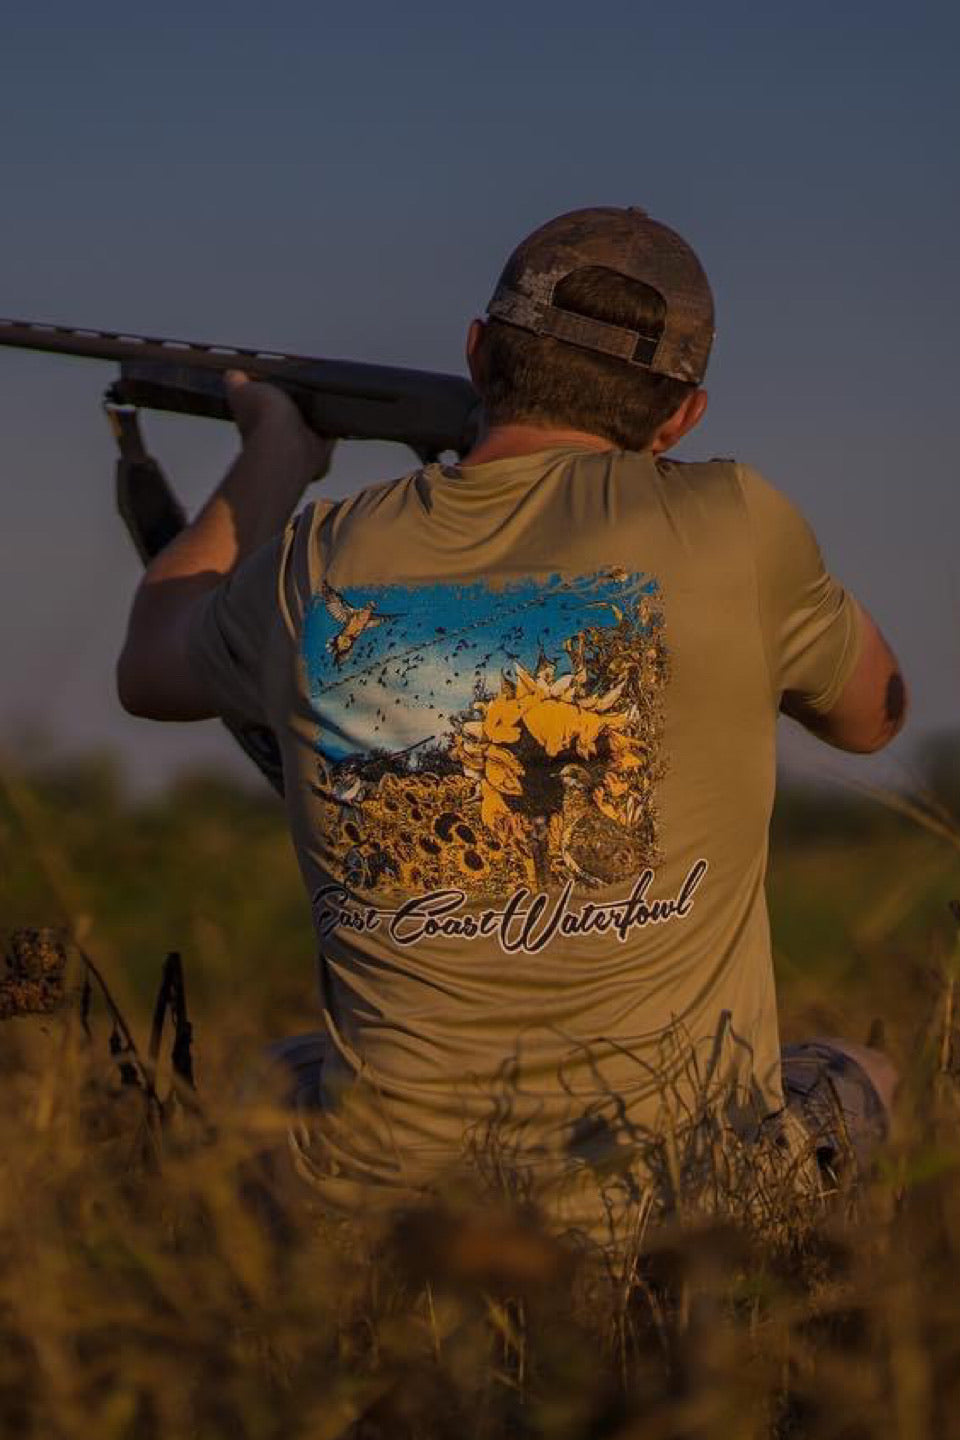 Dove Short Sleeve Dri Fit Shirt by East Coast Waterfowl